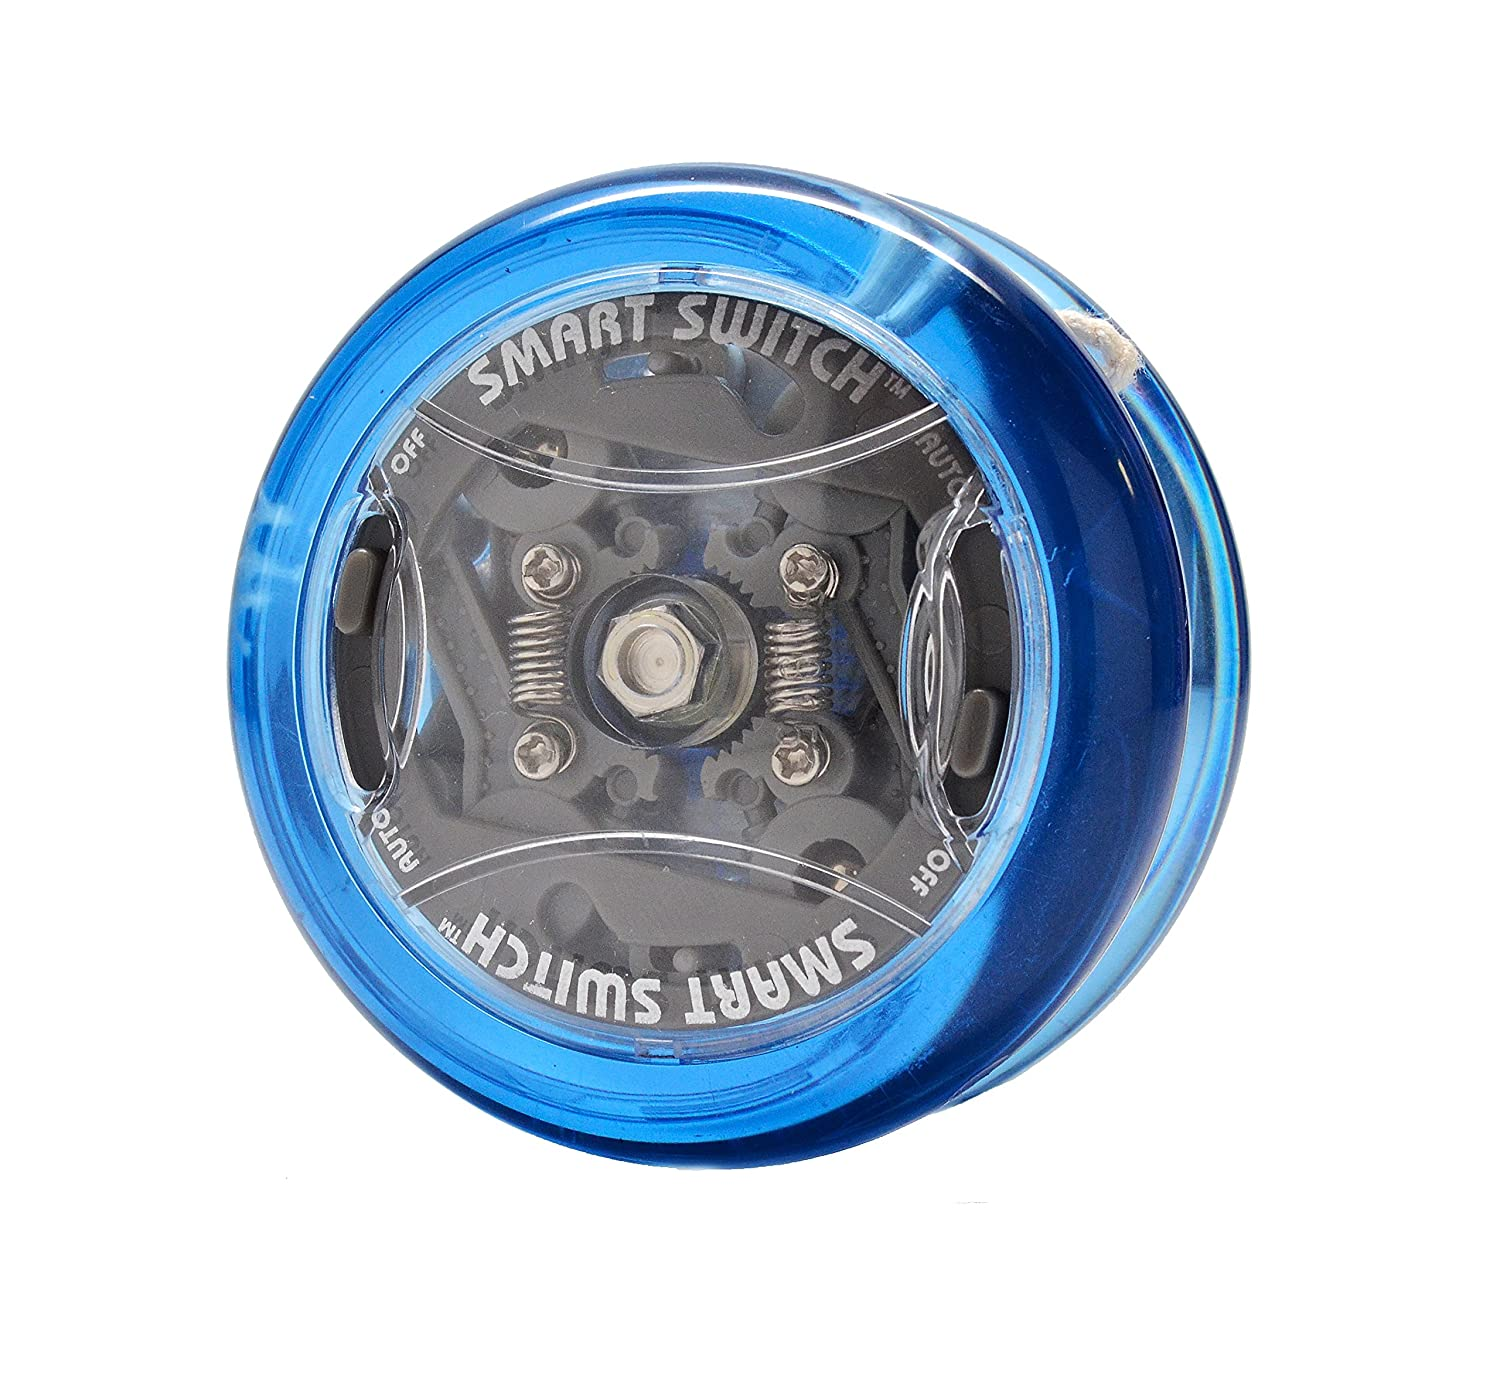 Yomega Power Brain XP yoyo with Synchronized Clutch and Smart Switch enables Players to Switch Between auto-Return and Manual Styles of Play